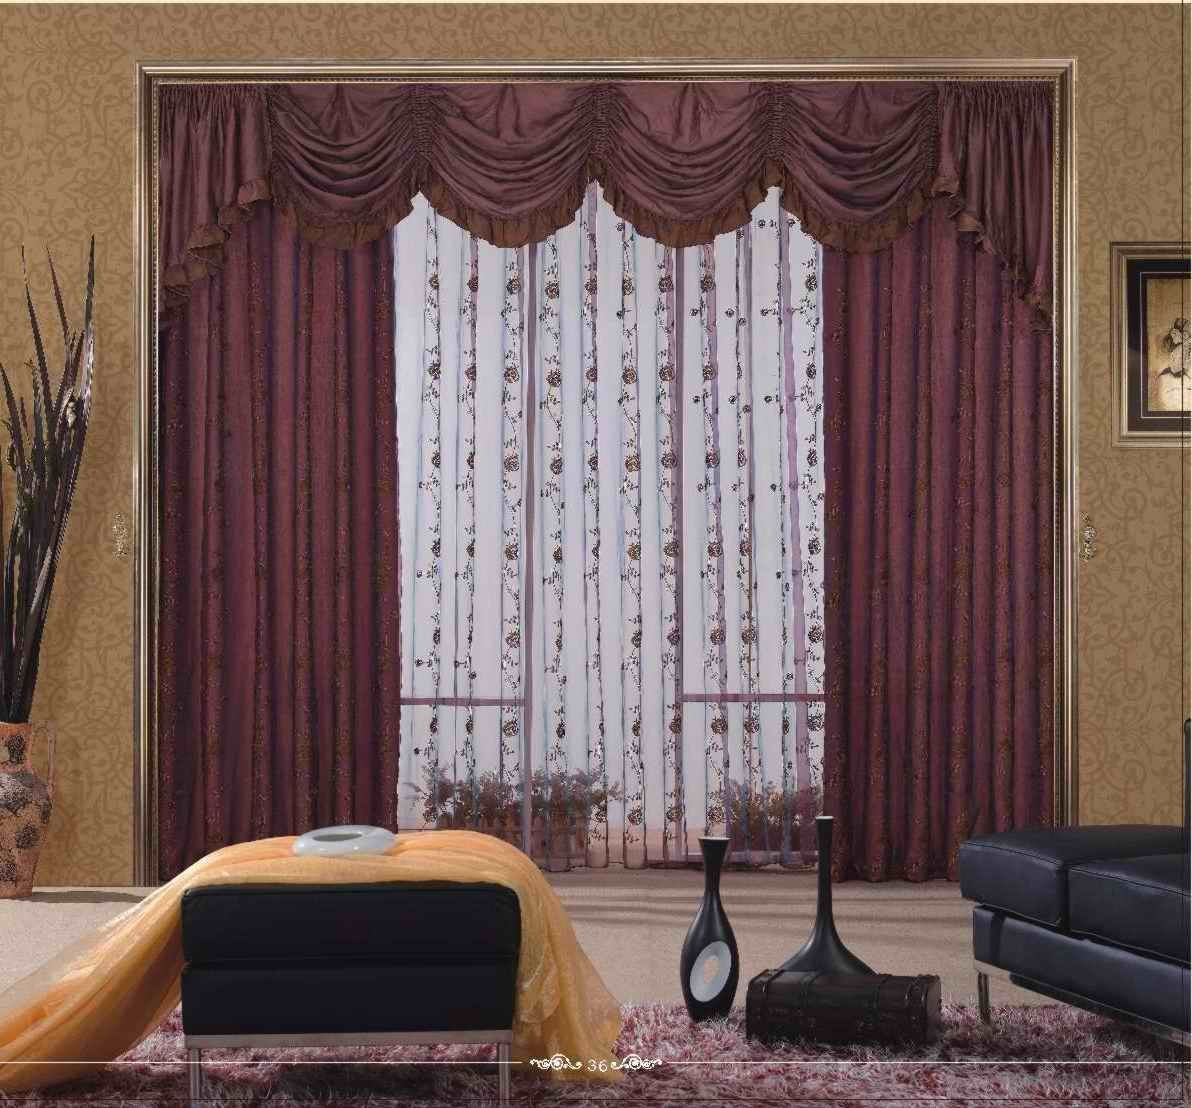 Vintage Living Room Curtains Designing Ideas With Triple Layers Such As  Ruffles Thick Maroon Curtain And White Decorative Curta. Part 54